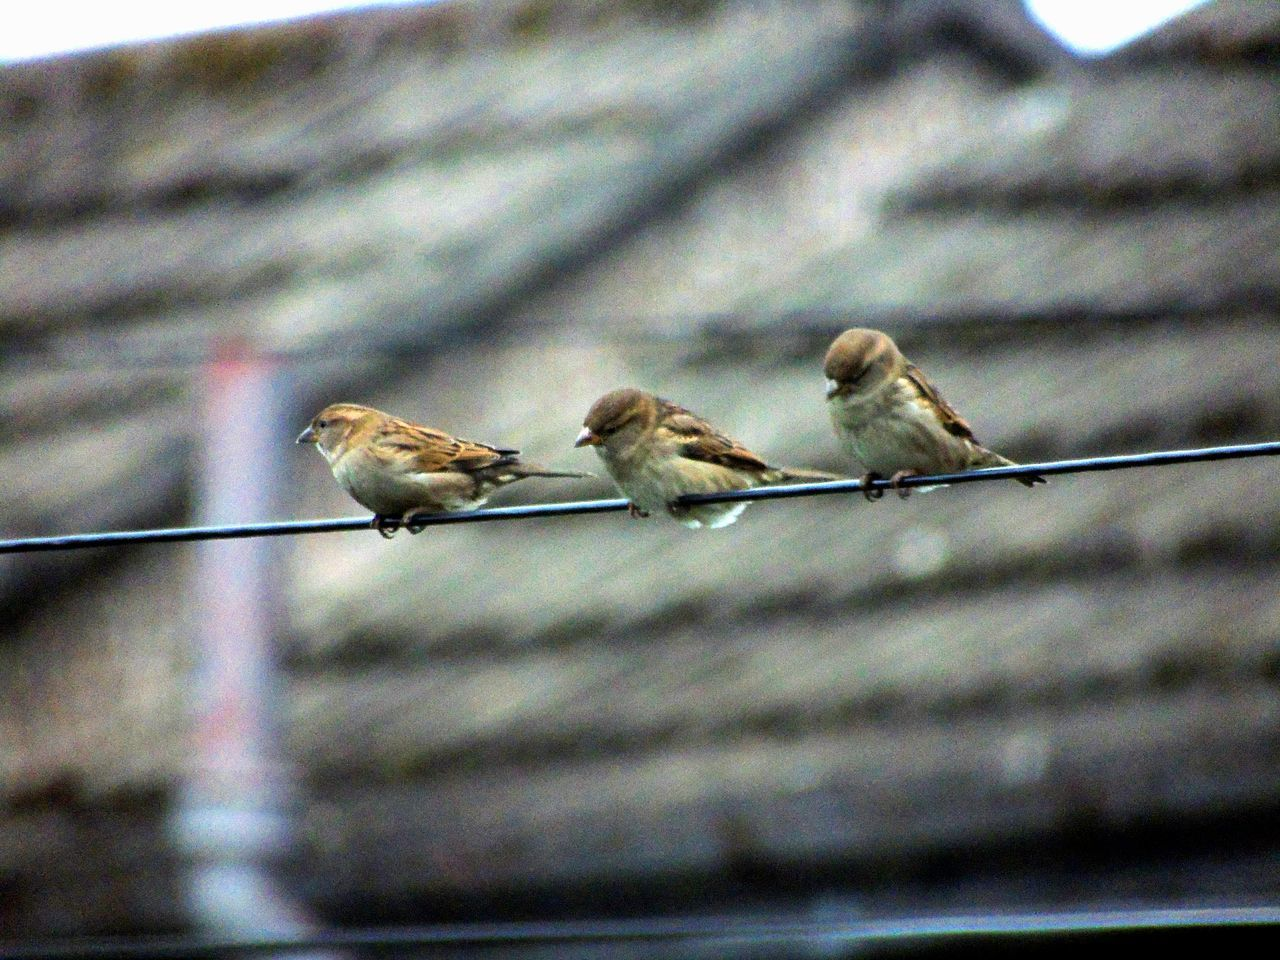 bird, animals in the wild, animal themes, sparrow, animal wildlife, day, no people, nature, perching, outdoors, close-up